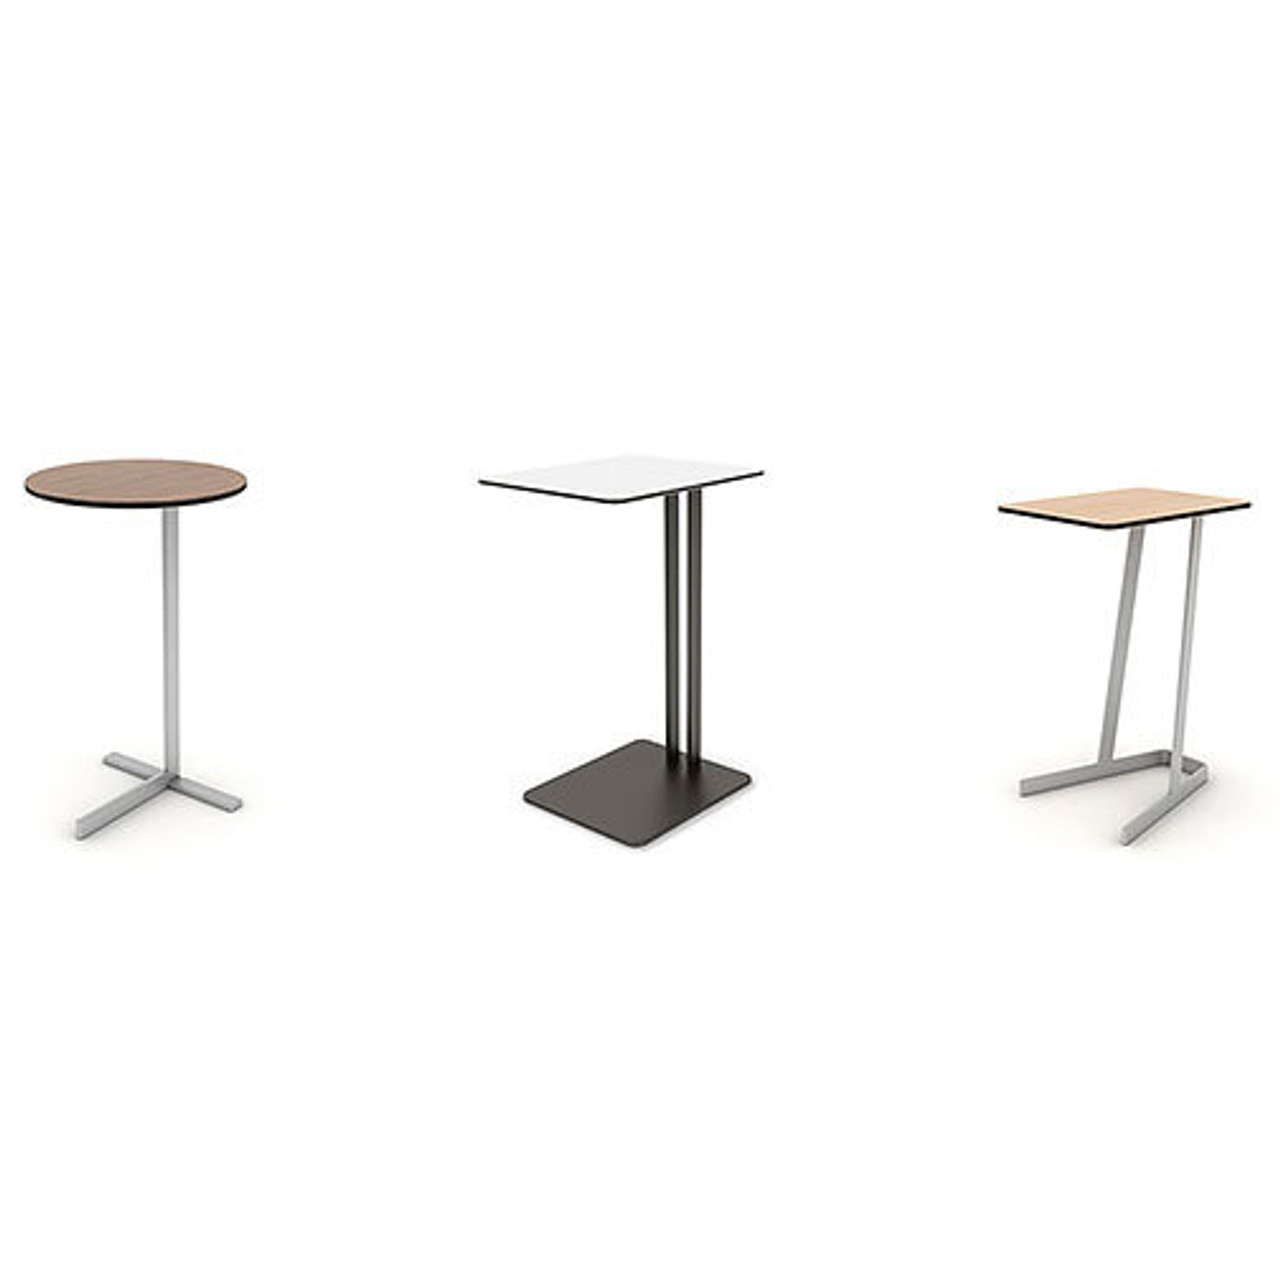 Peter Pepper Mode Tables